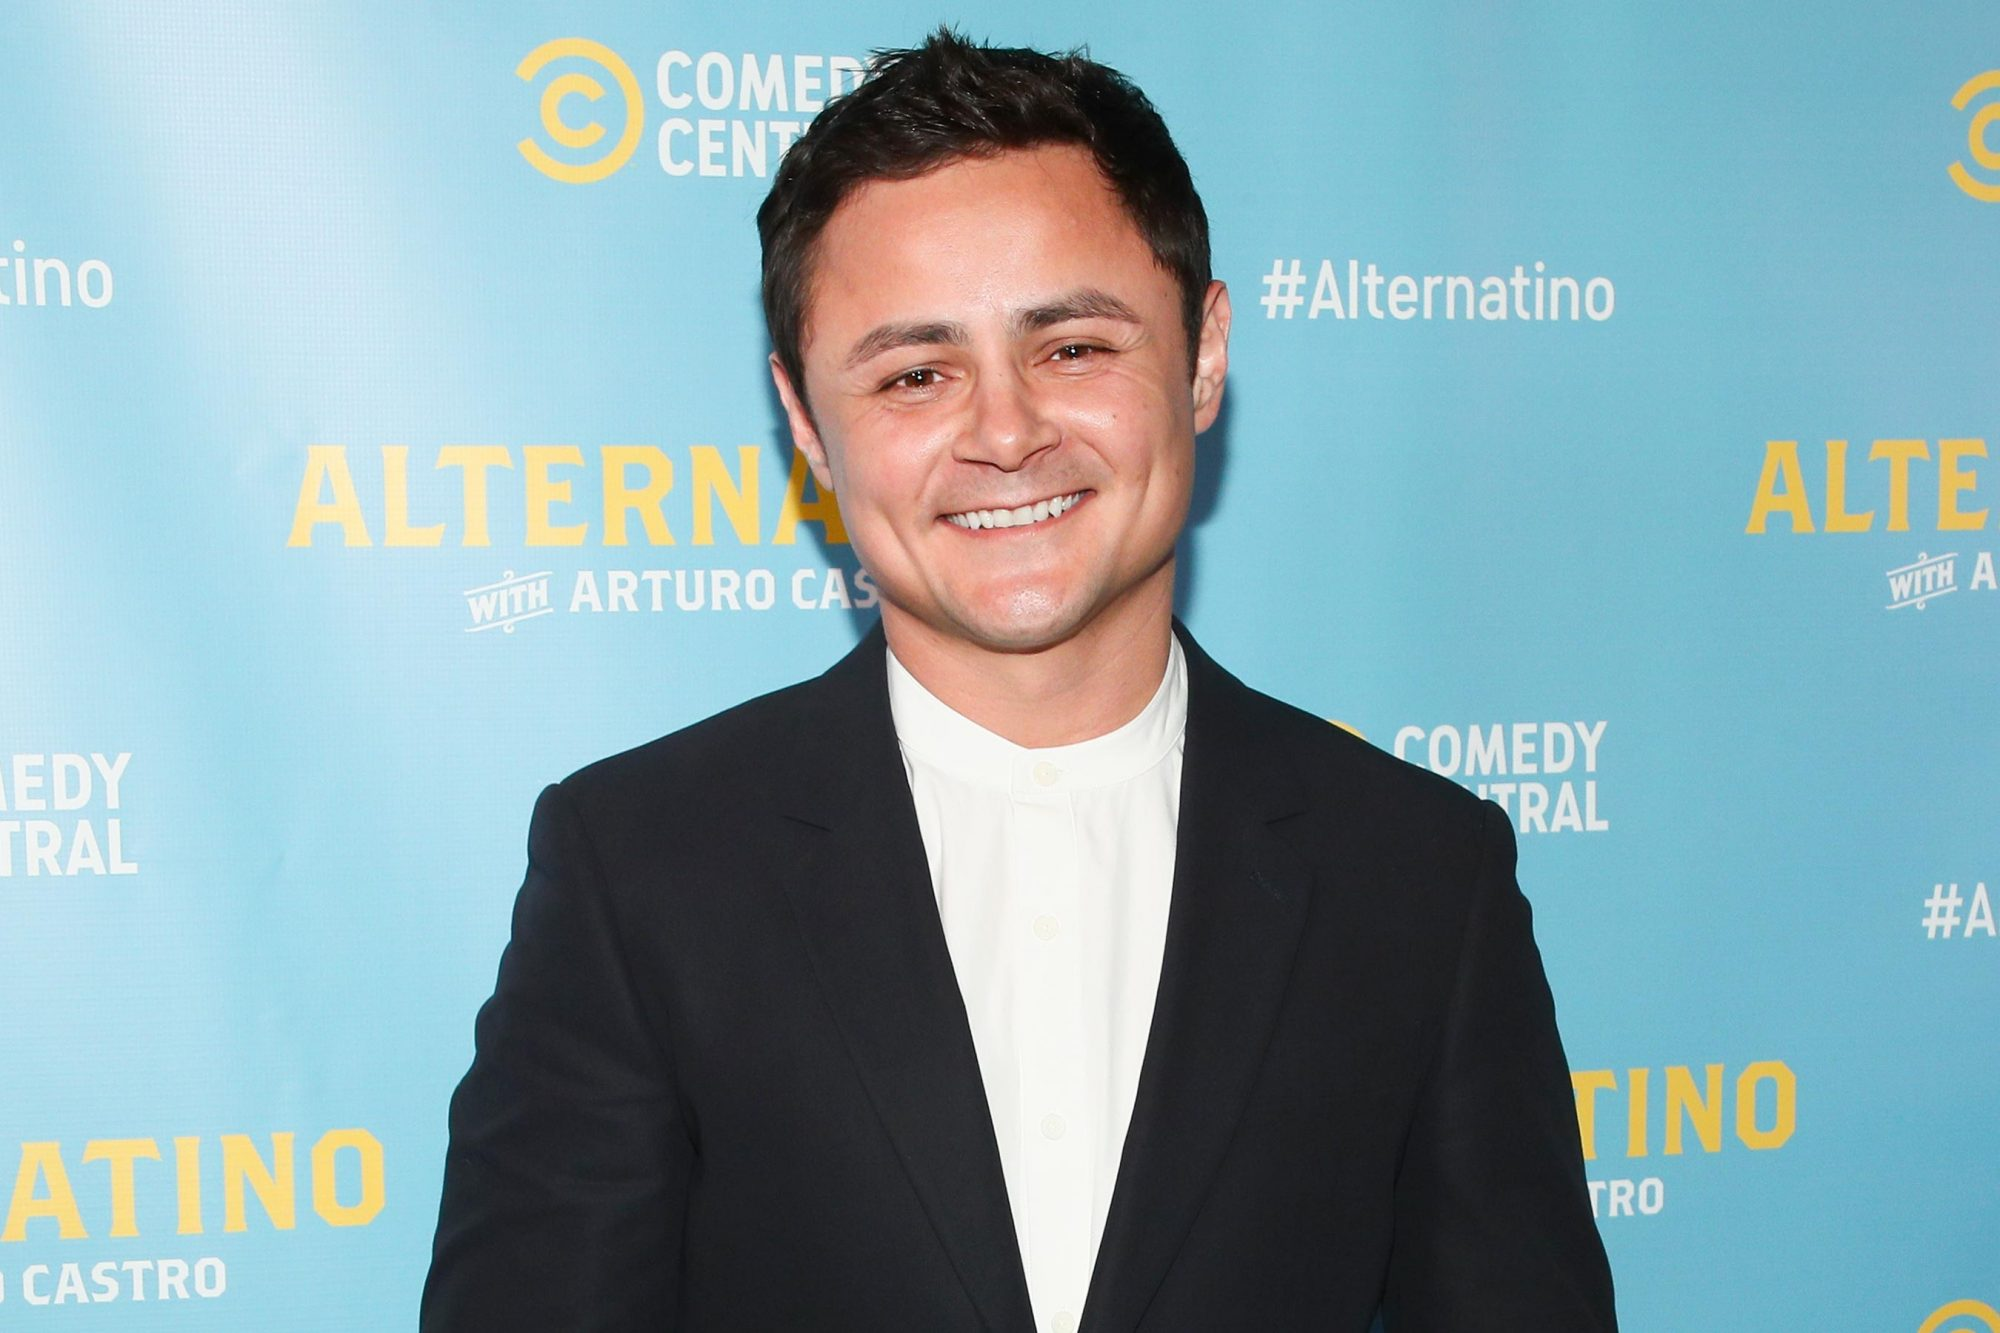 """NEW YORK, NEW YORK - JUNE 17: Arturo Castro attends the """"Alternatino With Arturo Castro"""" Season 1 premiere party at Slate on June 17, 2019 in New York City. (Photo by Astrid Stawiarz/Getty Images for Comedy Central )"""